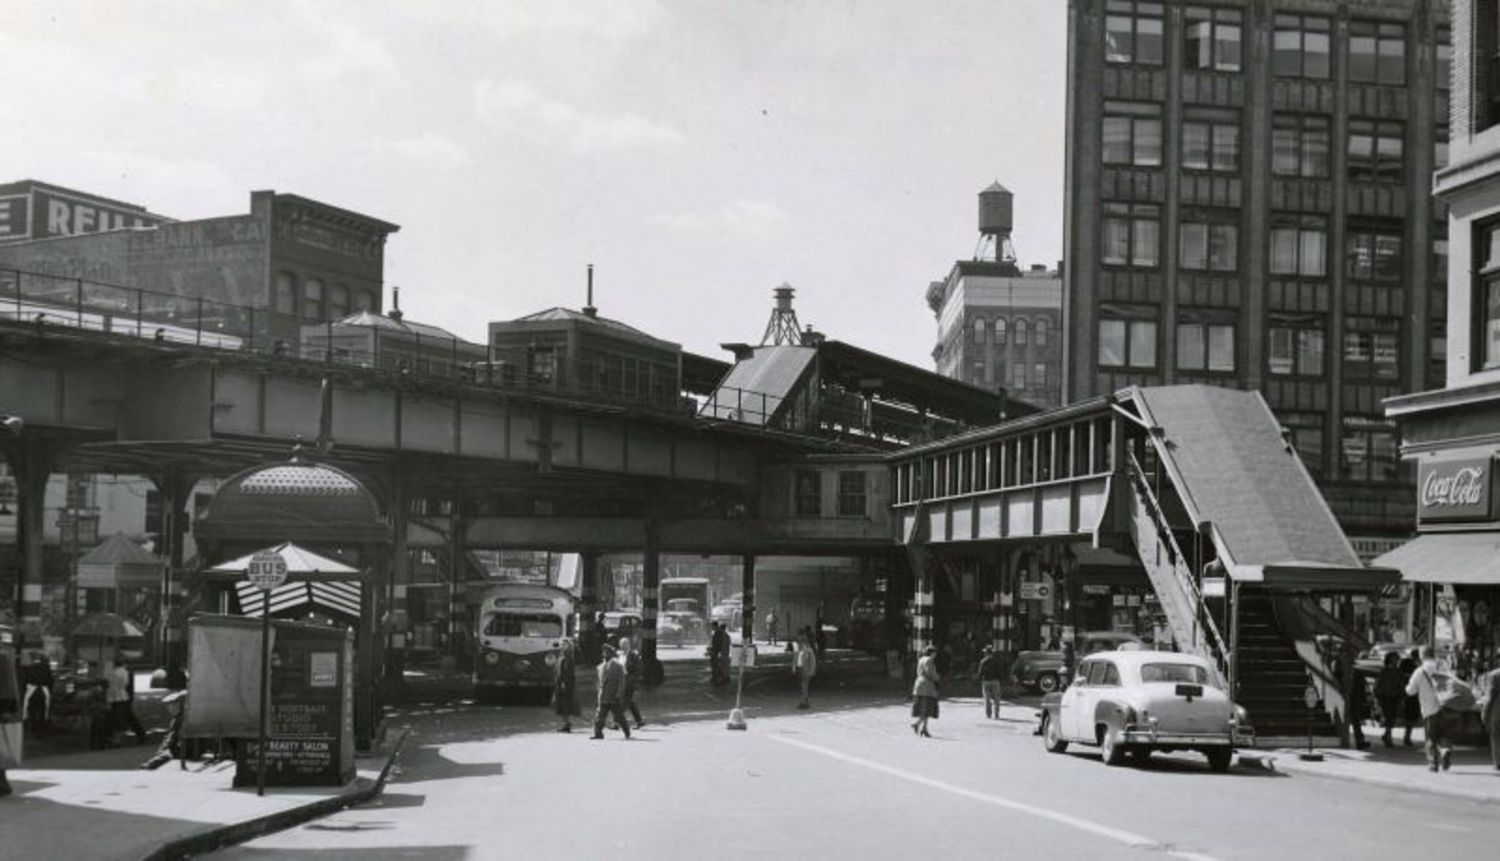 Melrose Avenue toward 149th Street, the Bronx, 1953